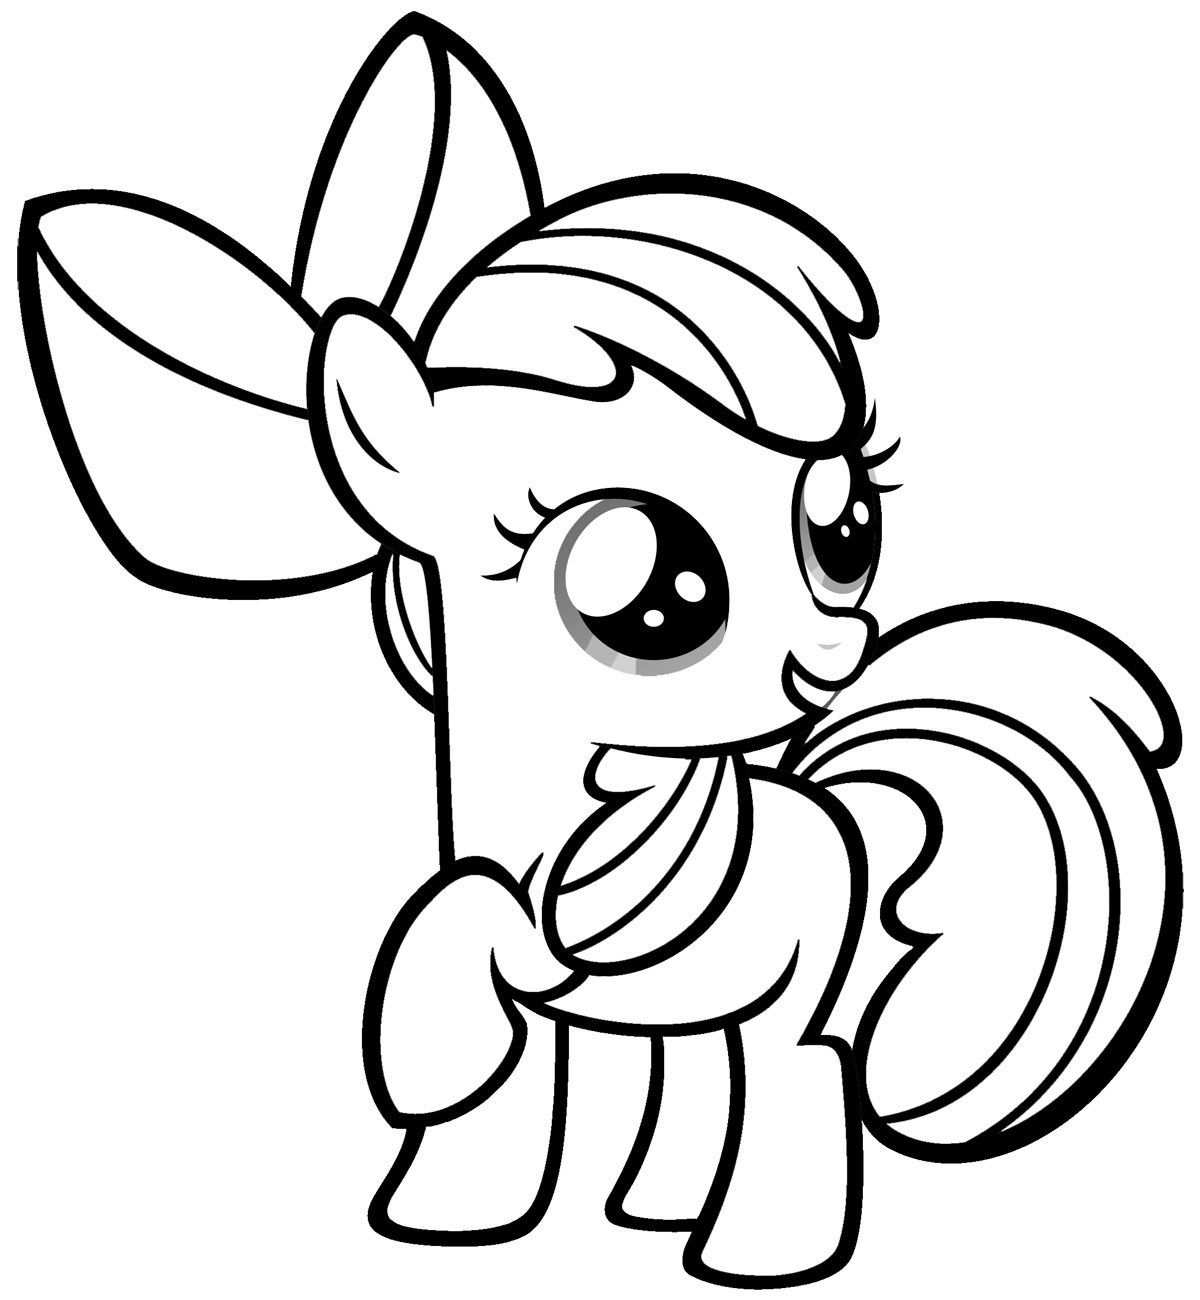 Free Printable My Little Pony Coloring Pages For Kids Ausmalbilder